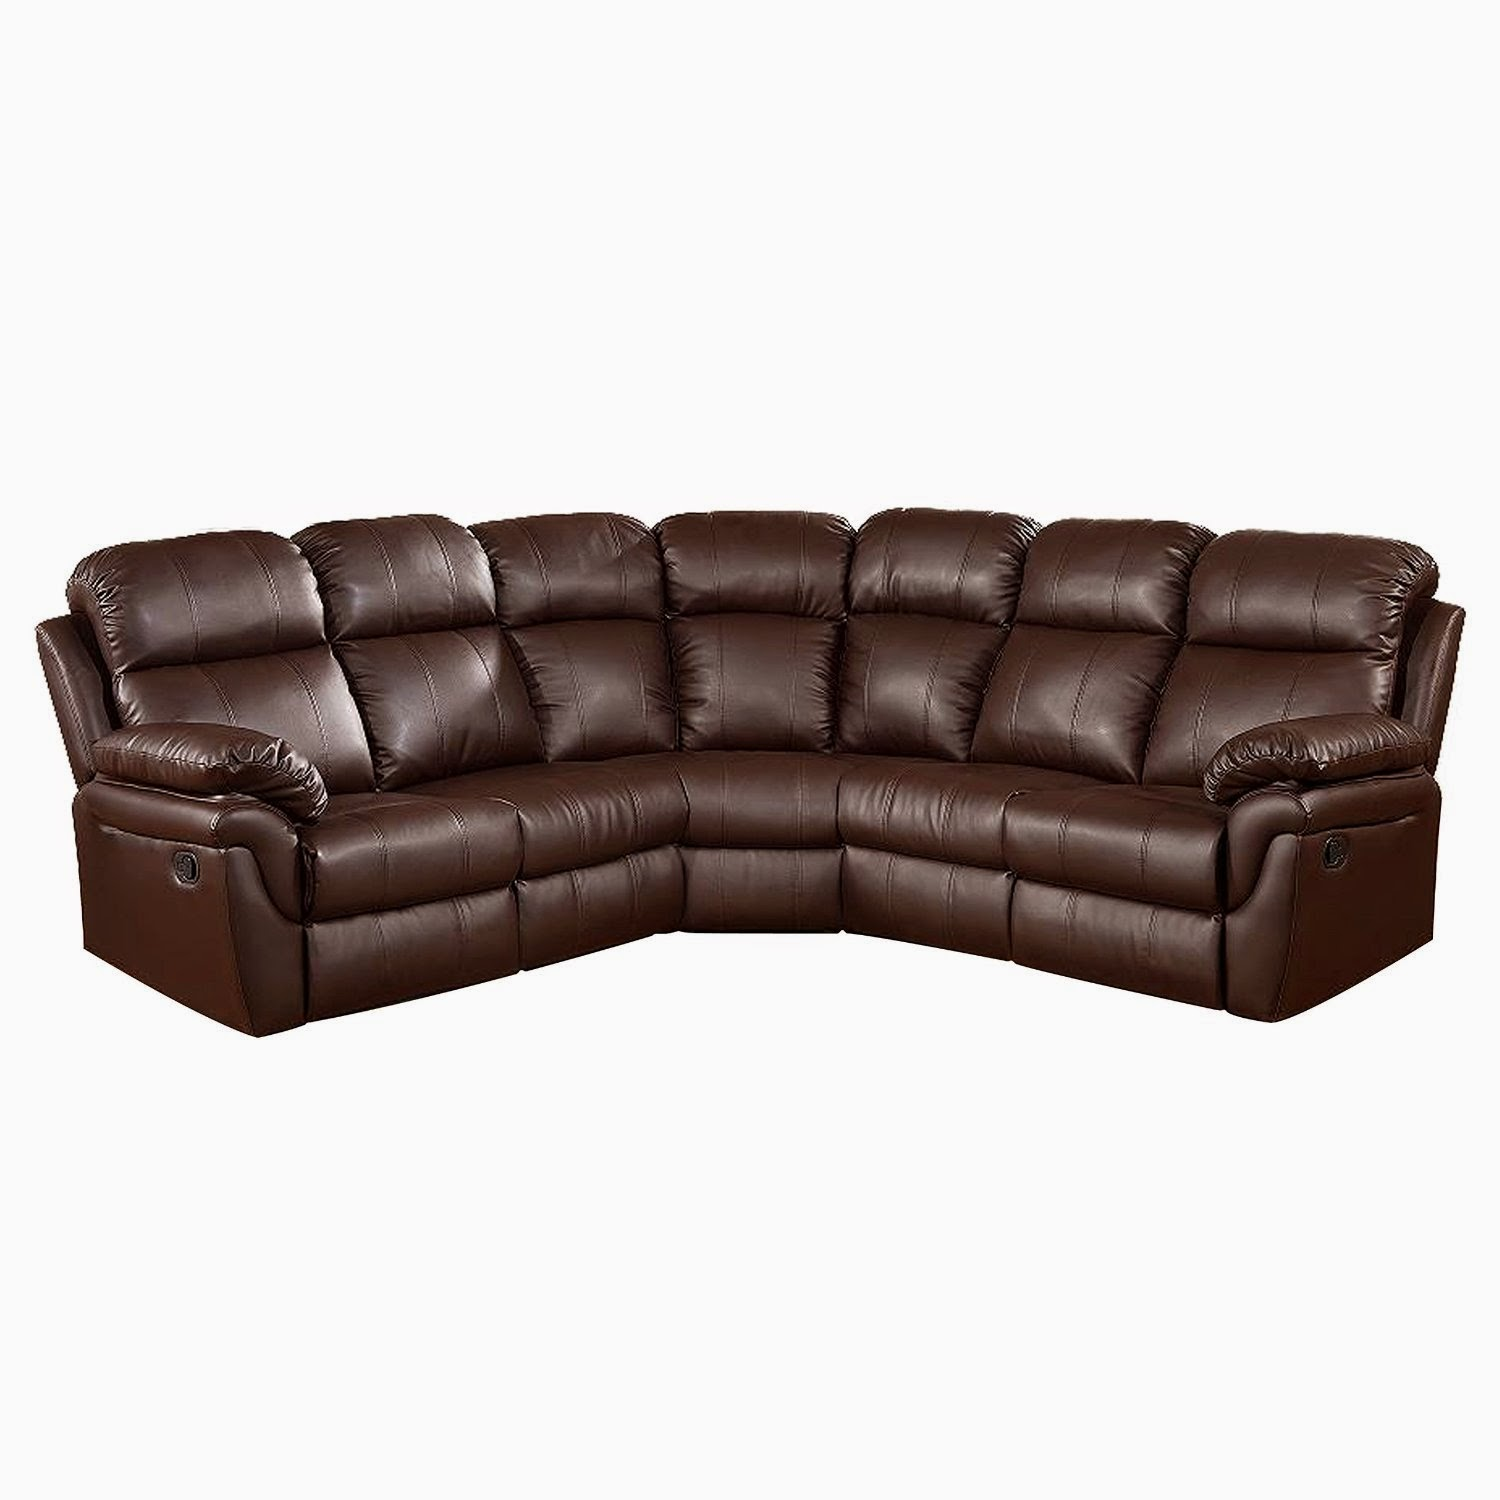 New small spaces sectional sofa review sectional sofas for Small sectional sofa reviews